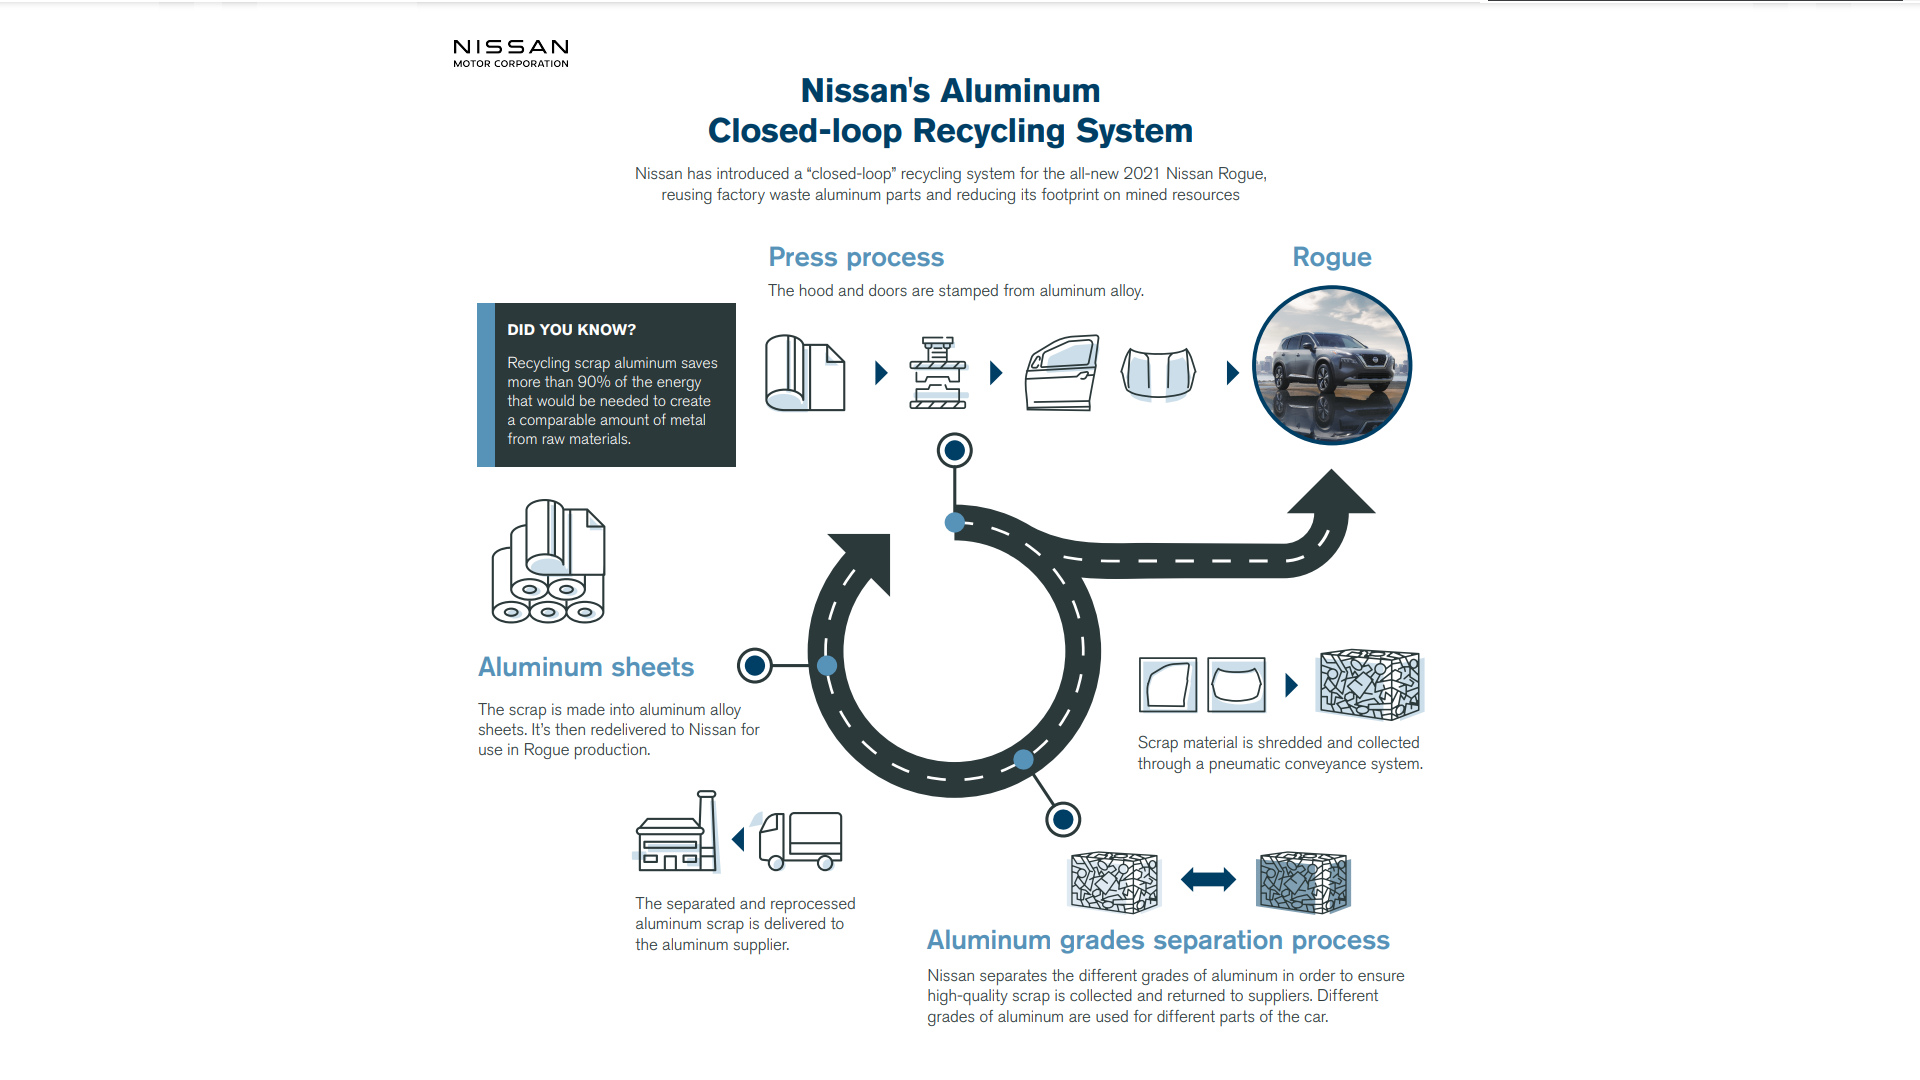 Nissan's Closed-Loop Recycling System